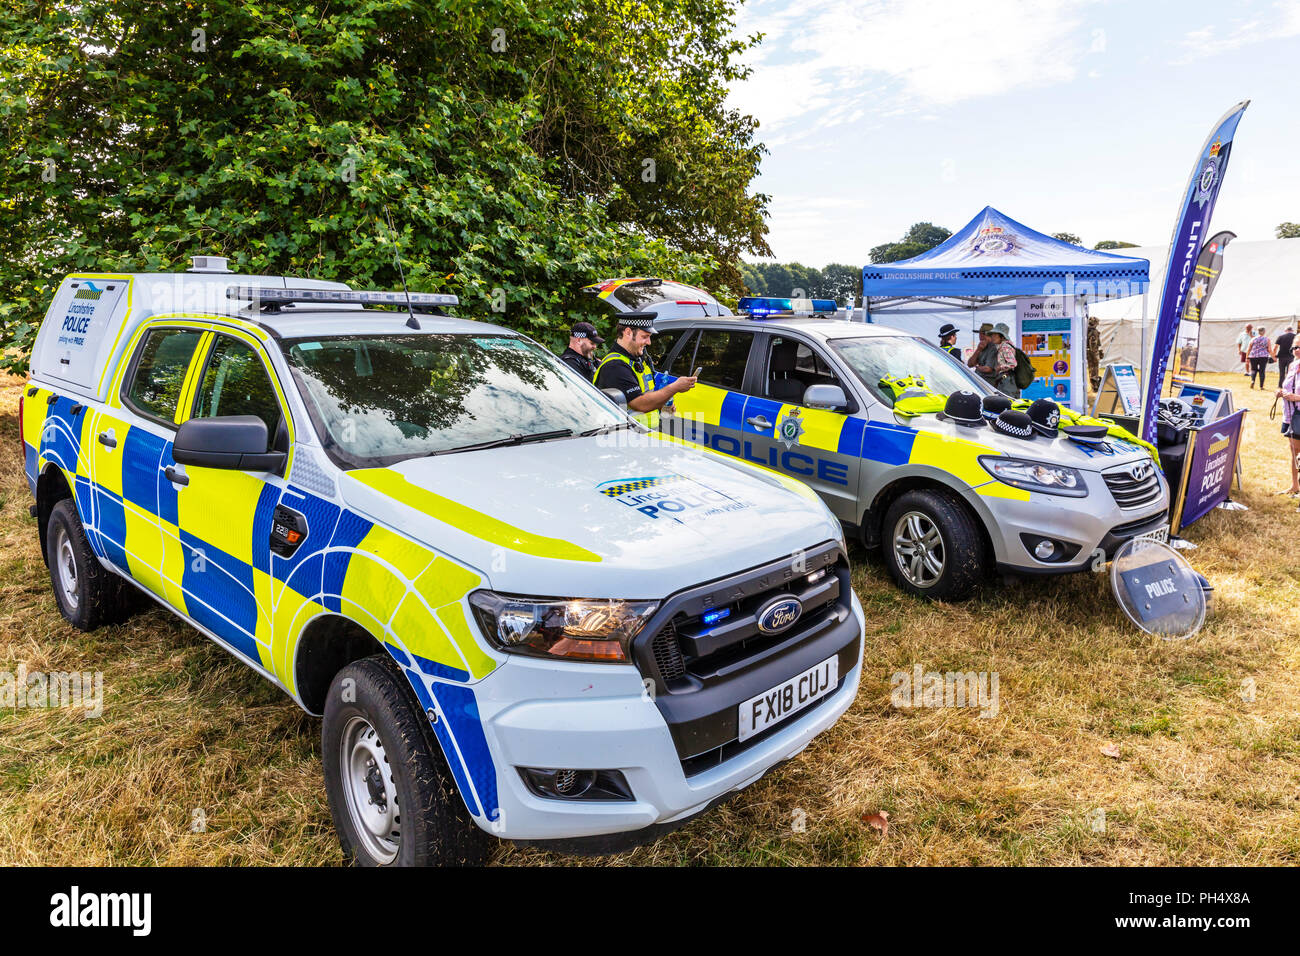 Police cars, police vehicles UK, UK police cars, UK police vehicles, marked police cars, UK, England, Lincolnshire police, policing, cars, car vehicle - Stock Image